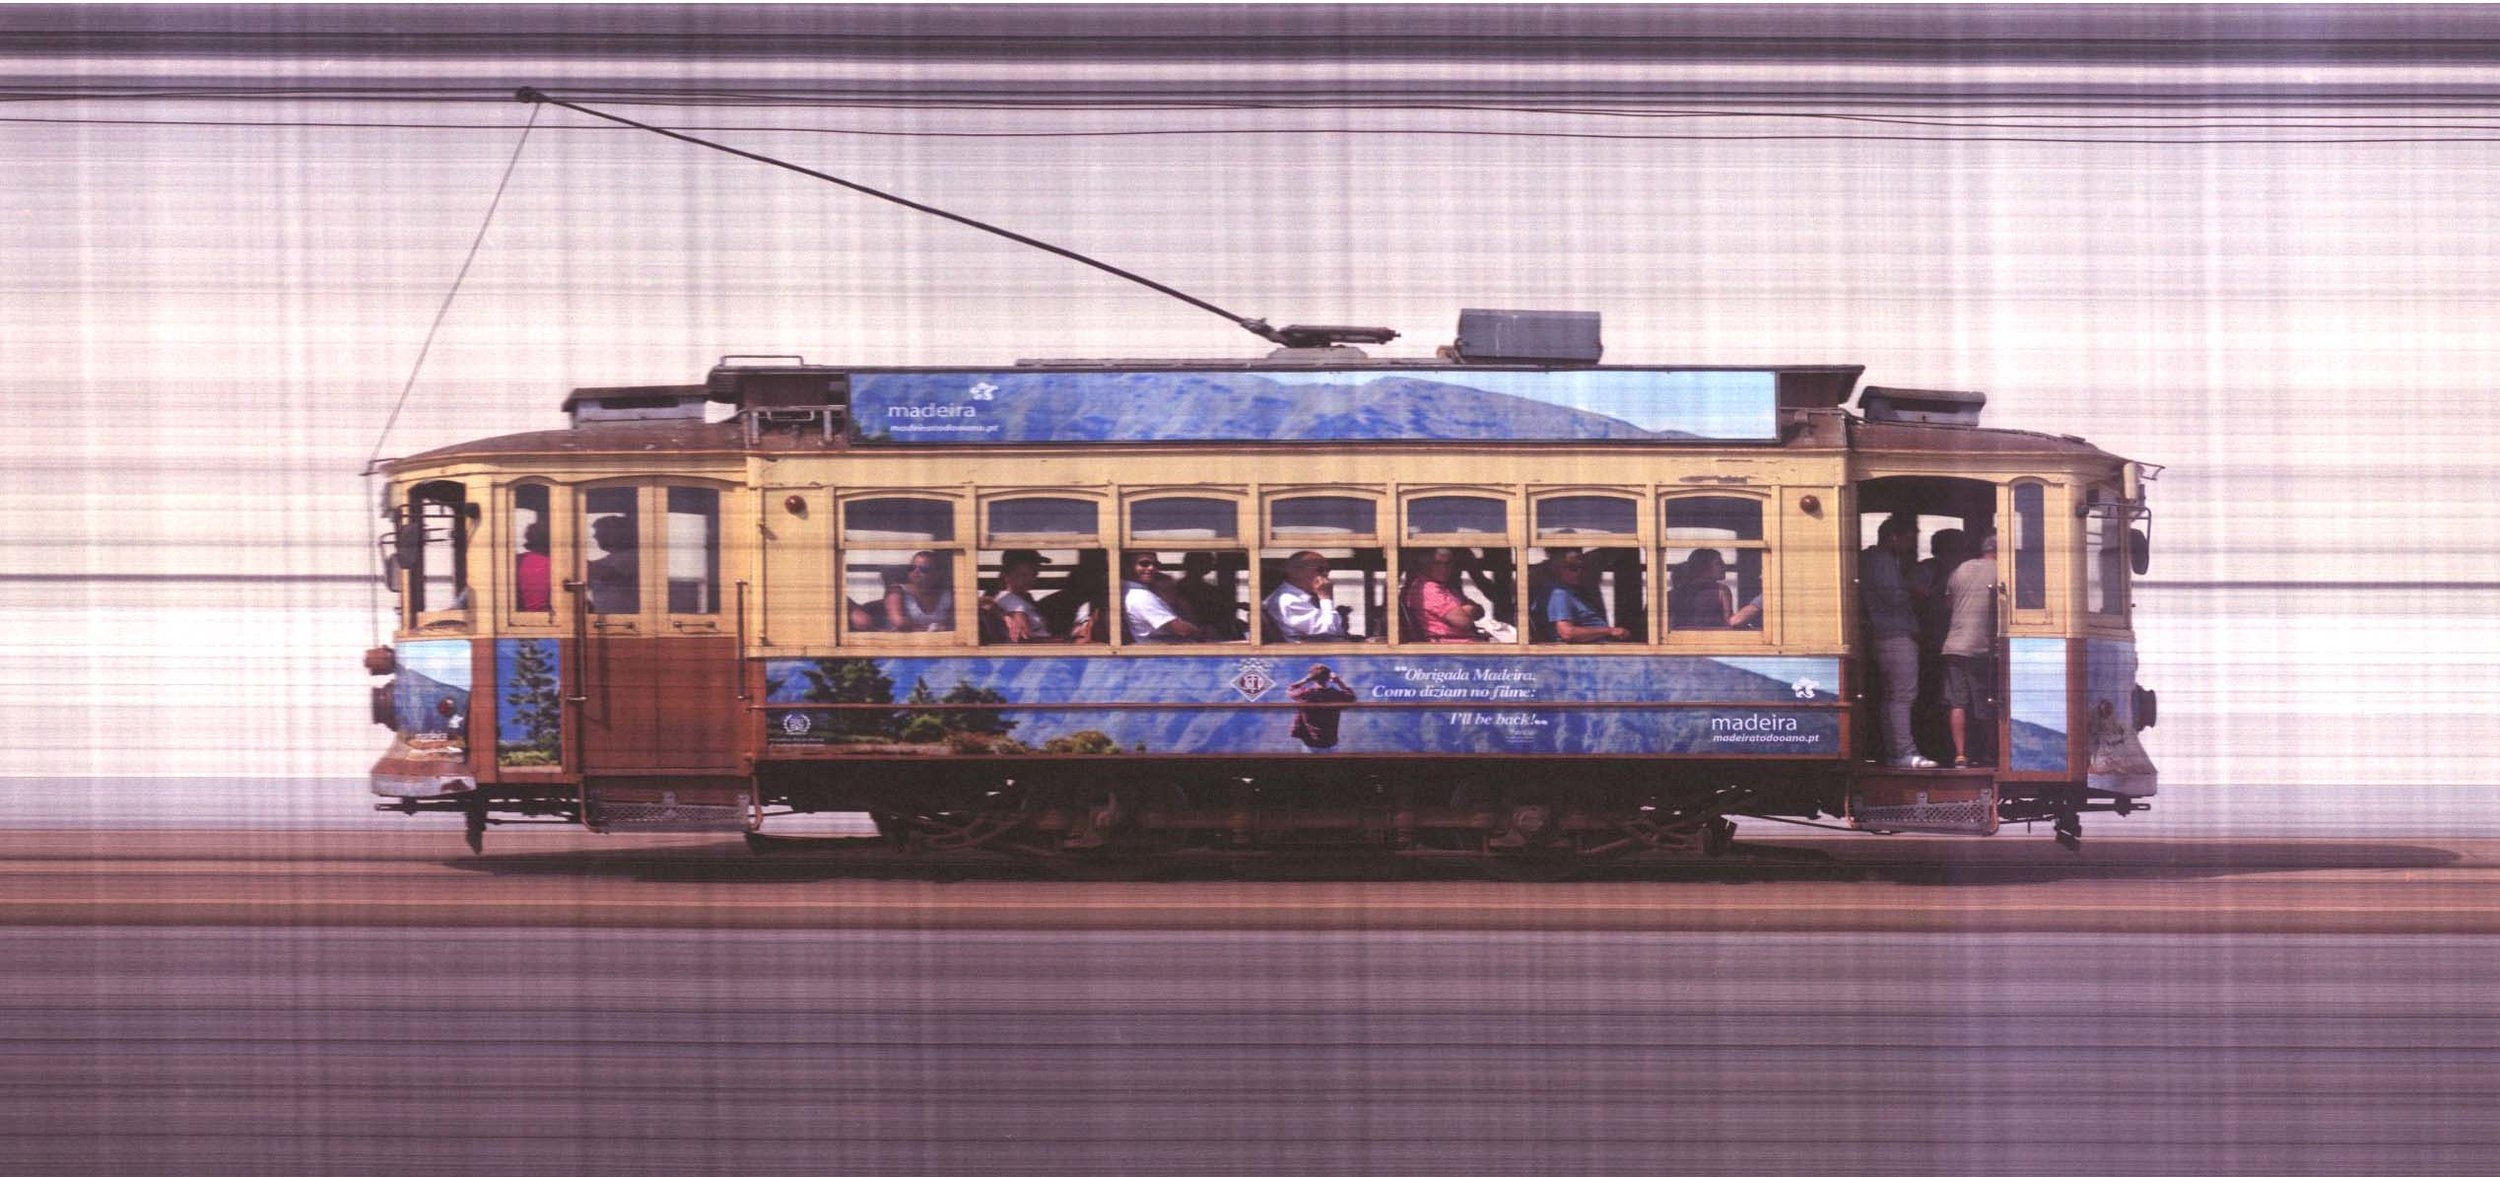 Trolley car photographed with slit-scan camera